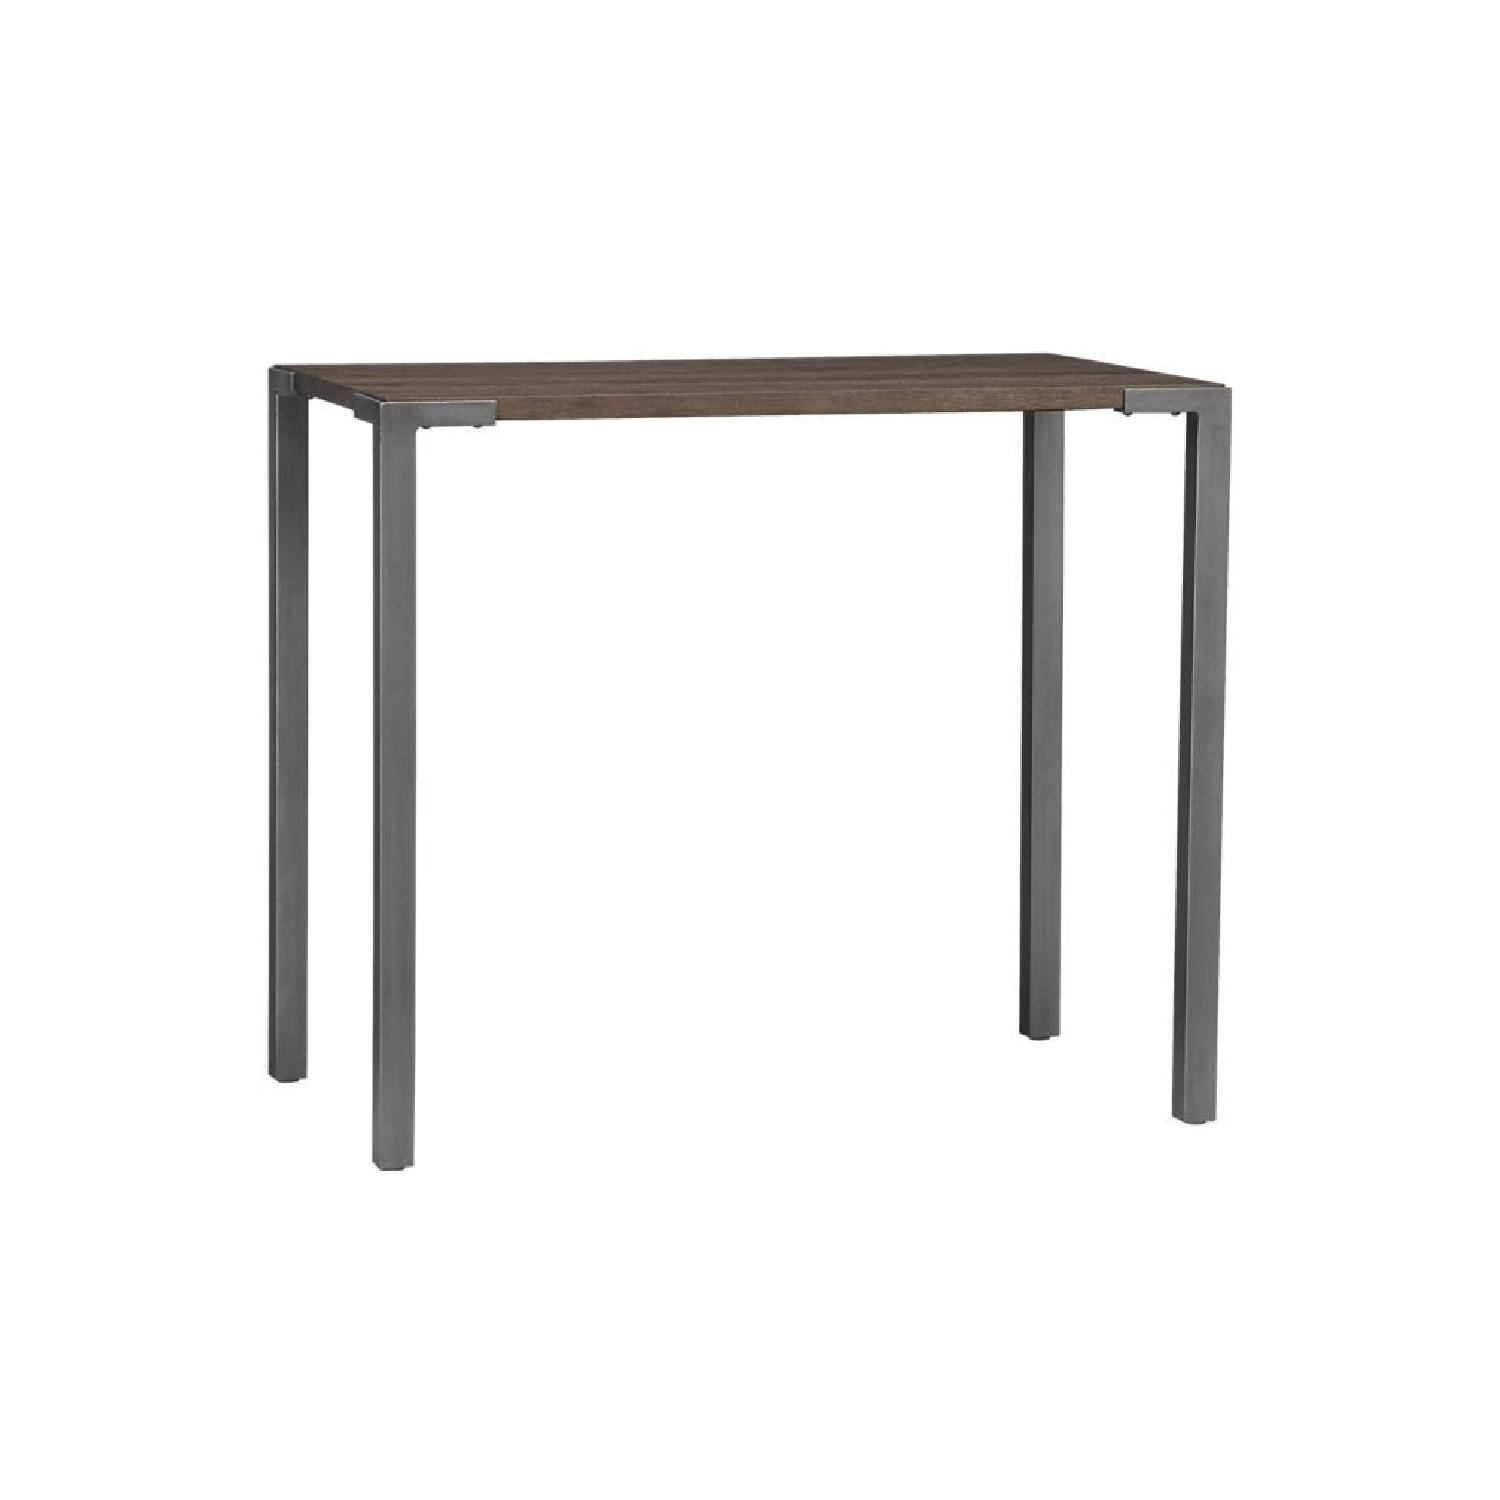 CB2 Bar Height Table w/ 4 White Leather Stools